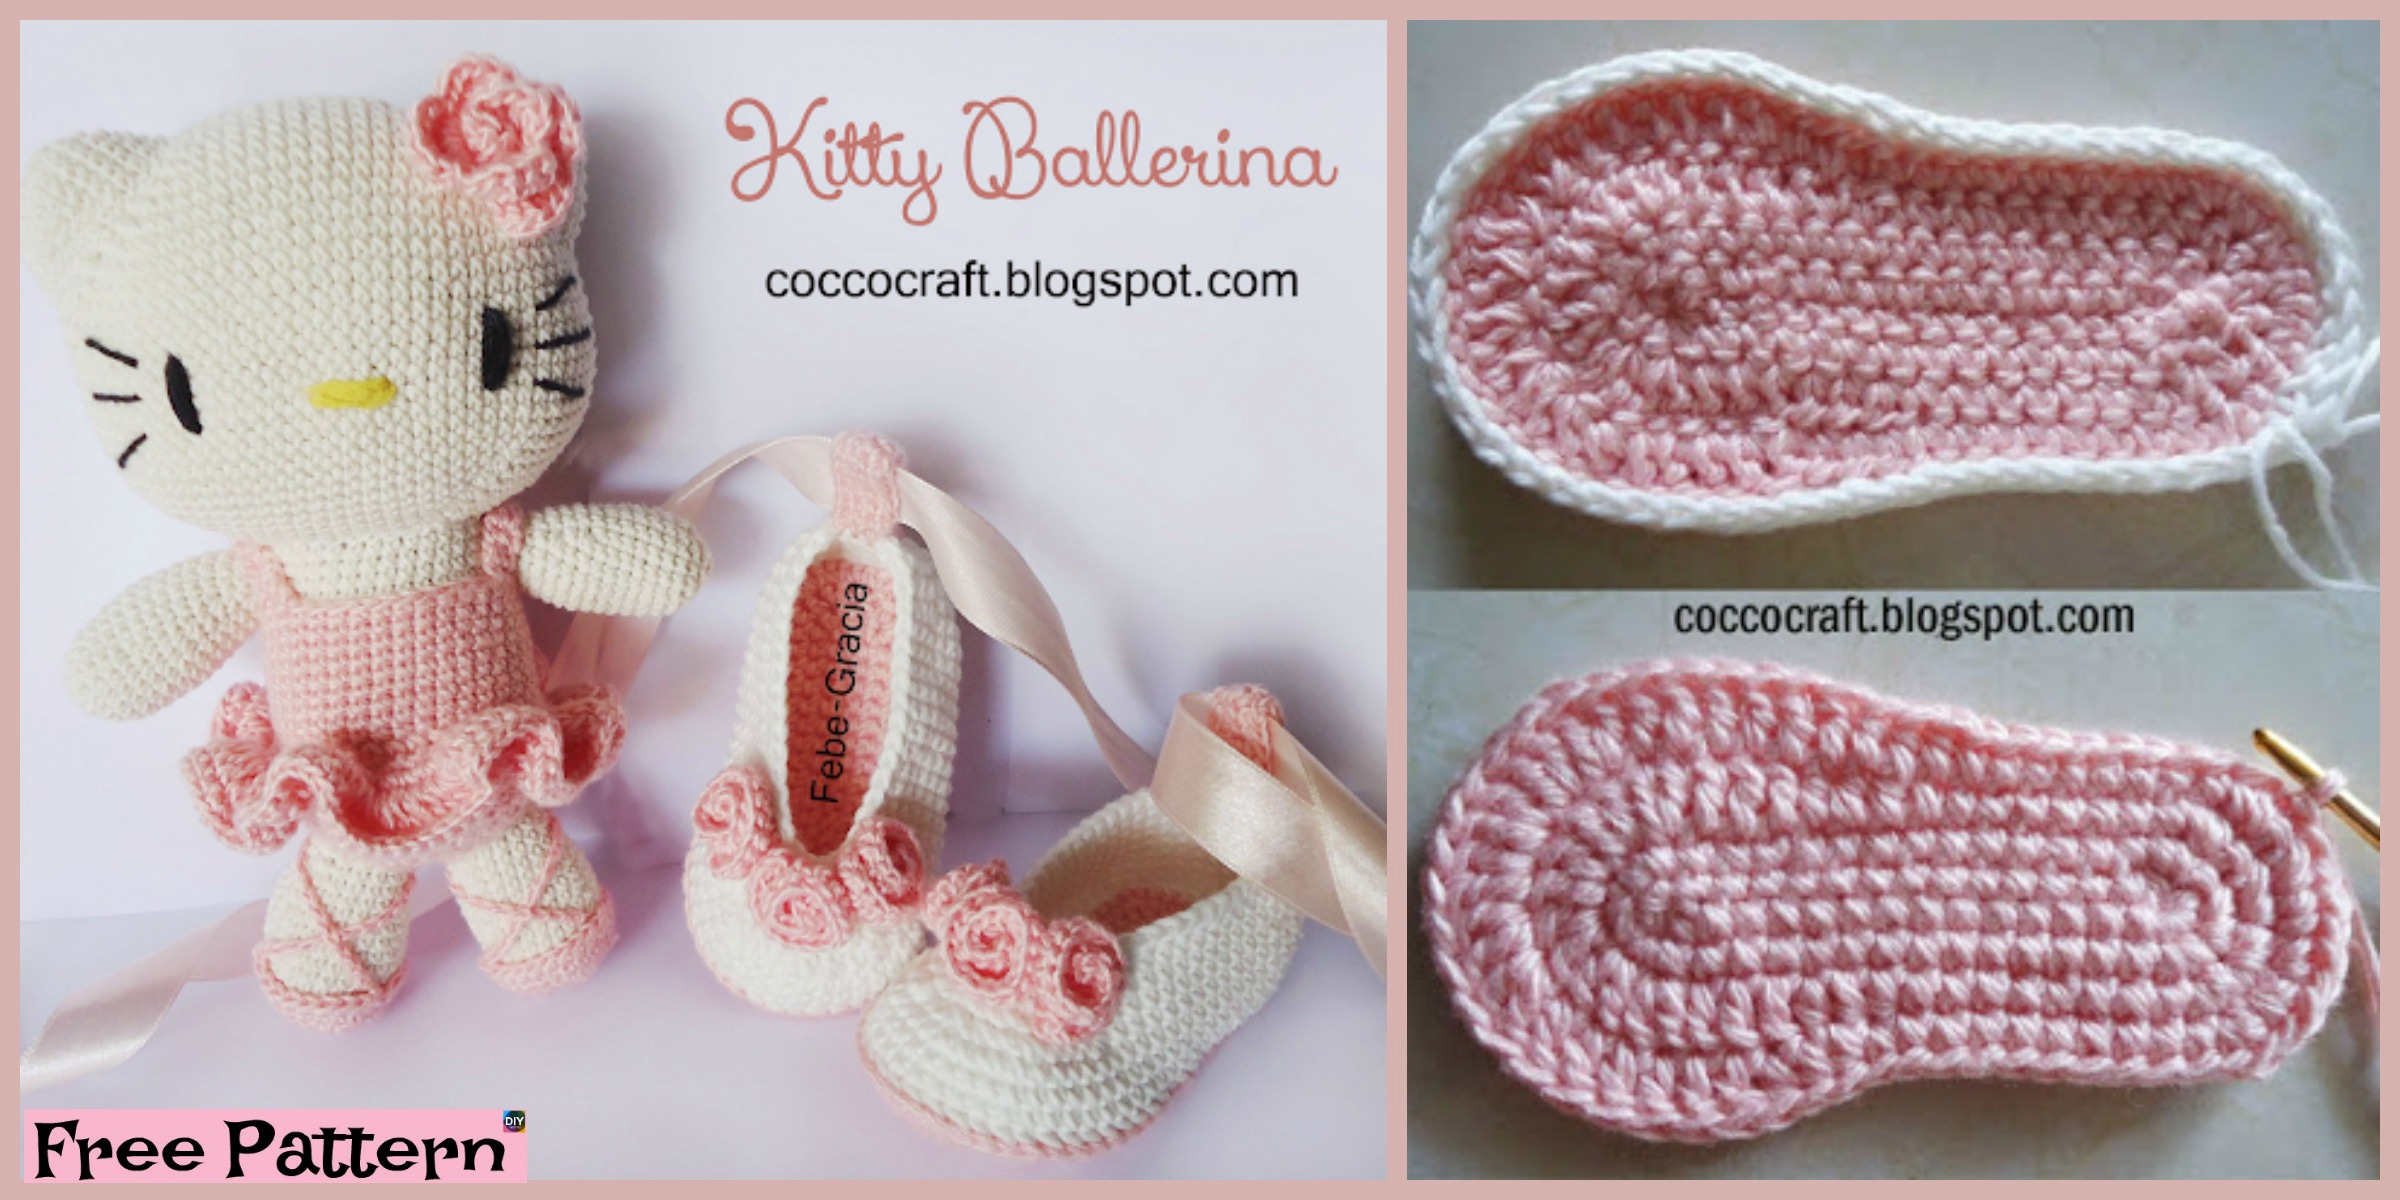 Crochet Kitty Ballerina Amigurumi & Hat – Free Pattern